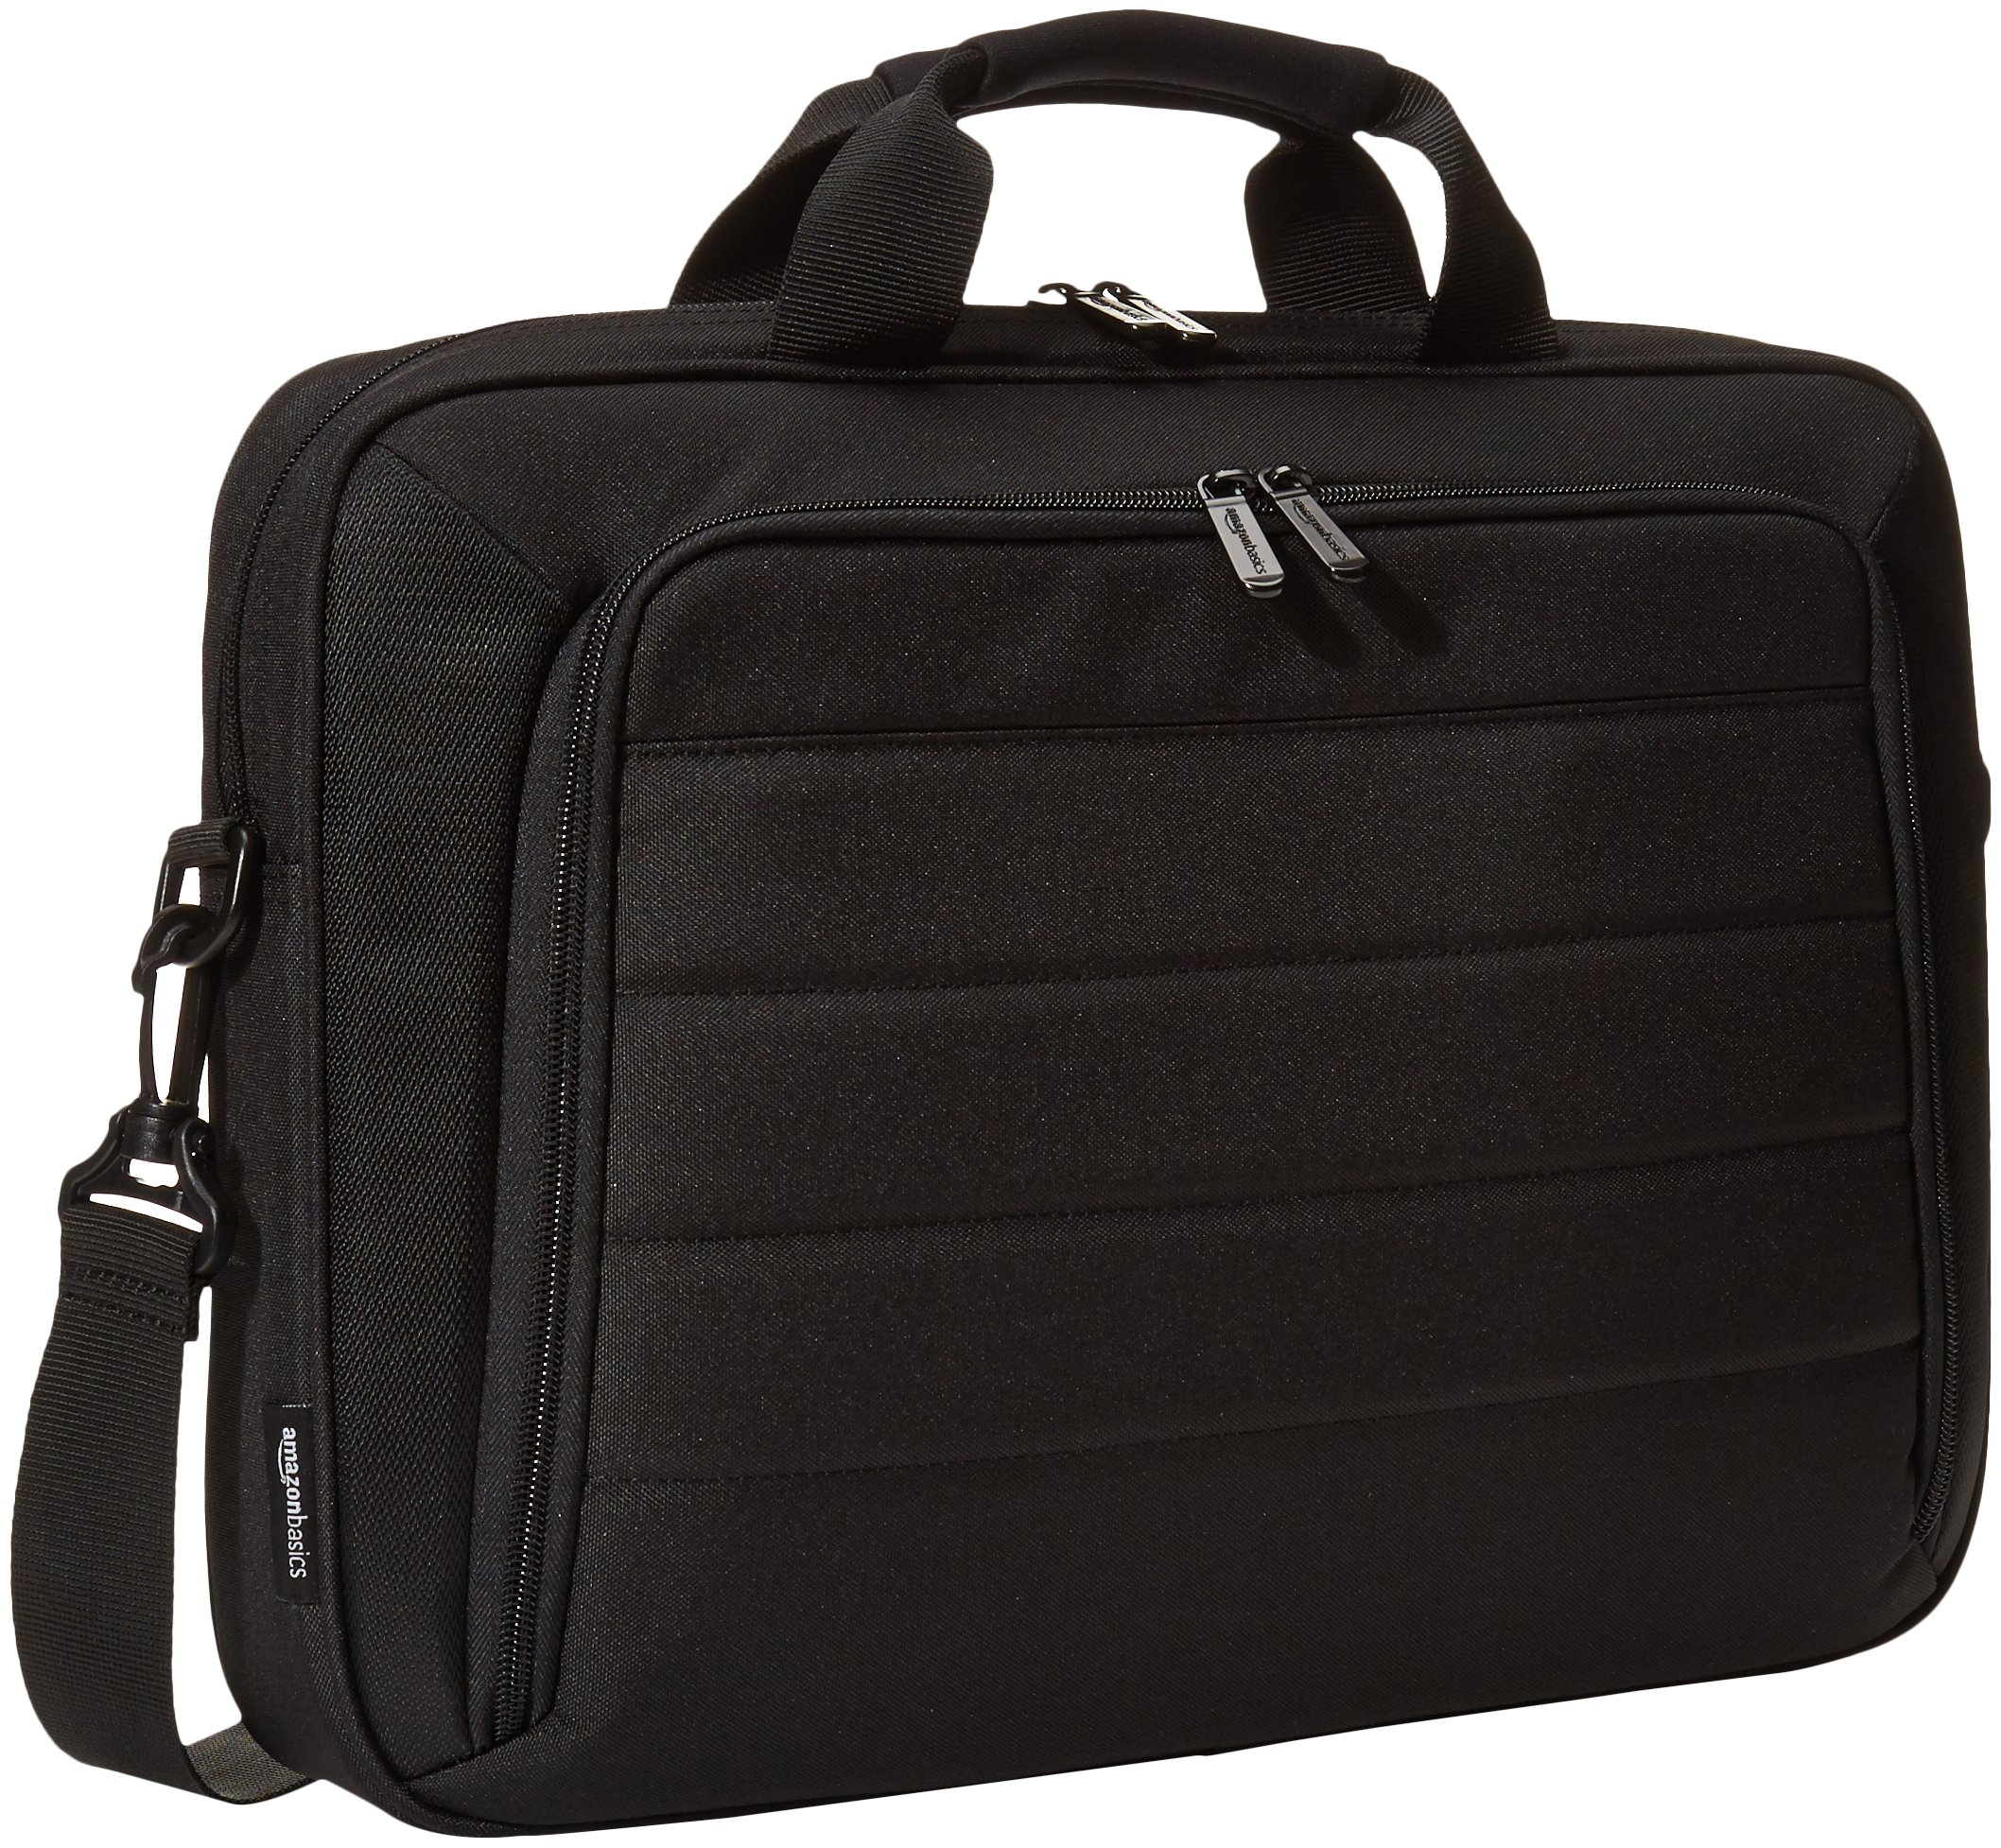 AmazonBasics 15.6'' Laptop and Tablet Case, Black